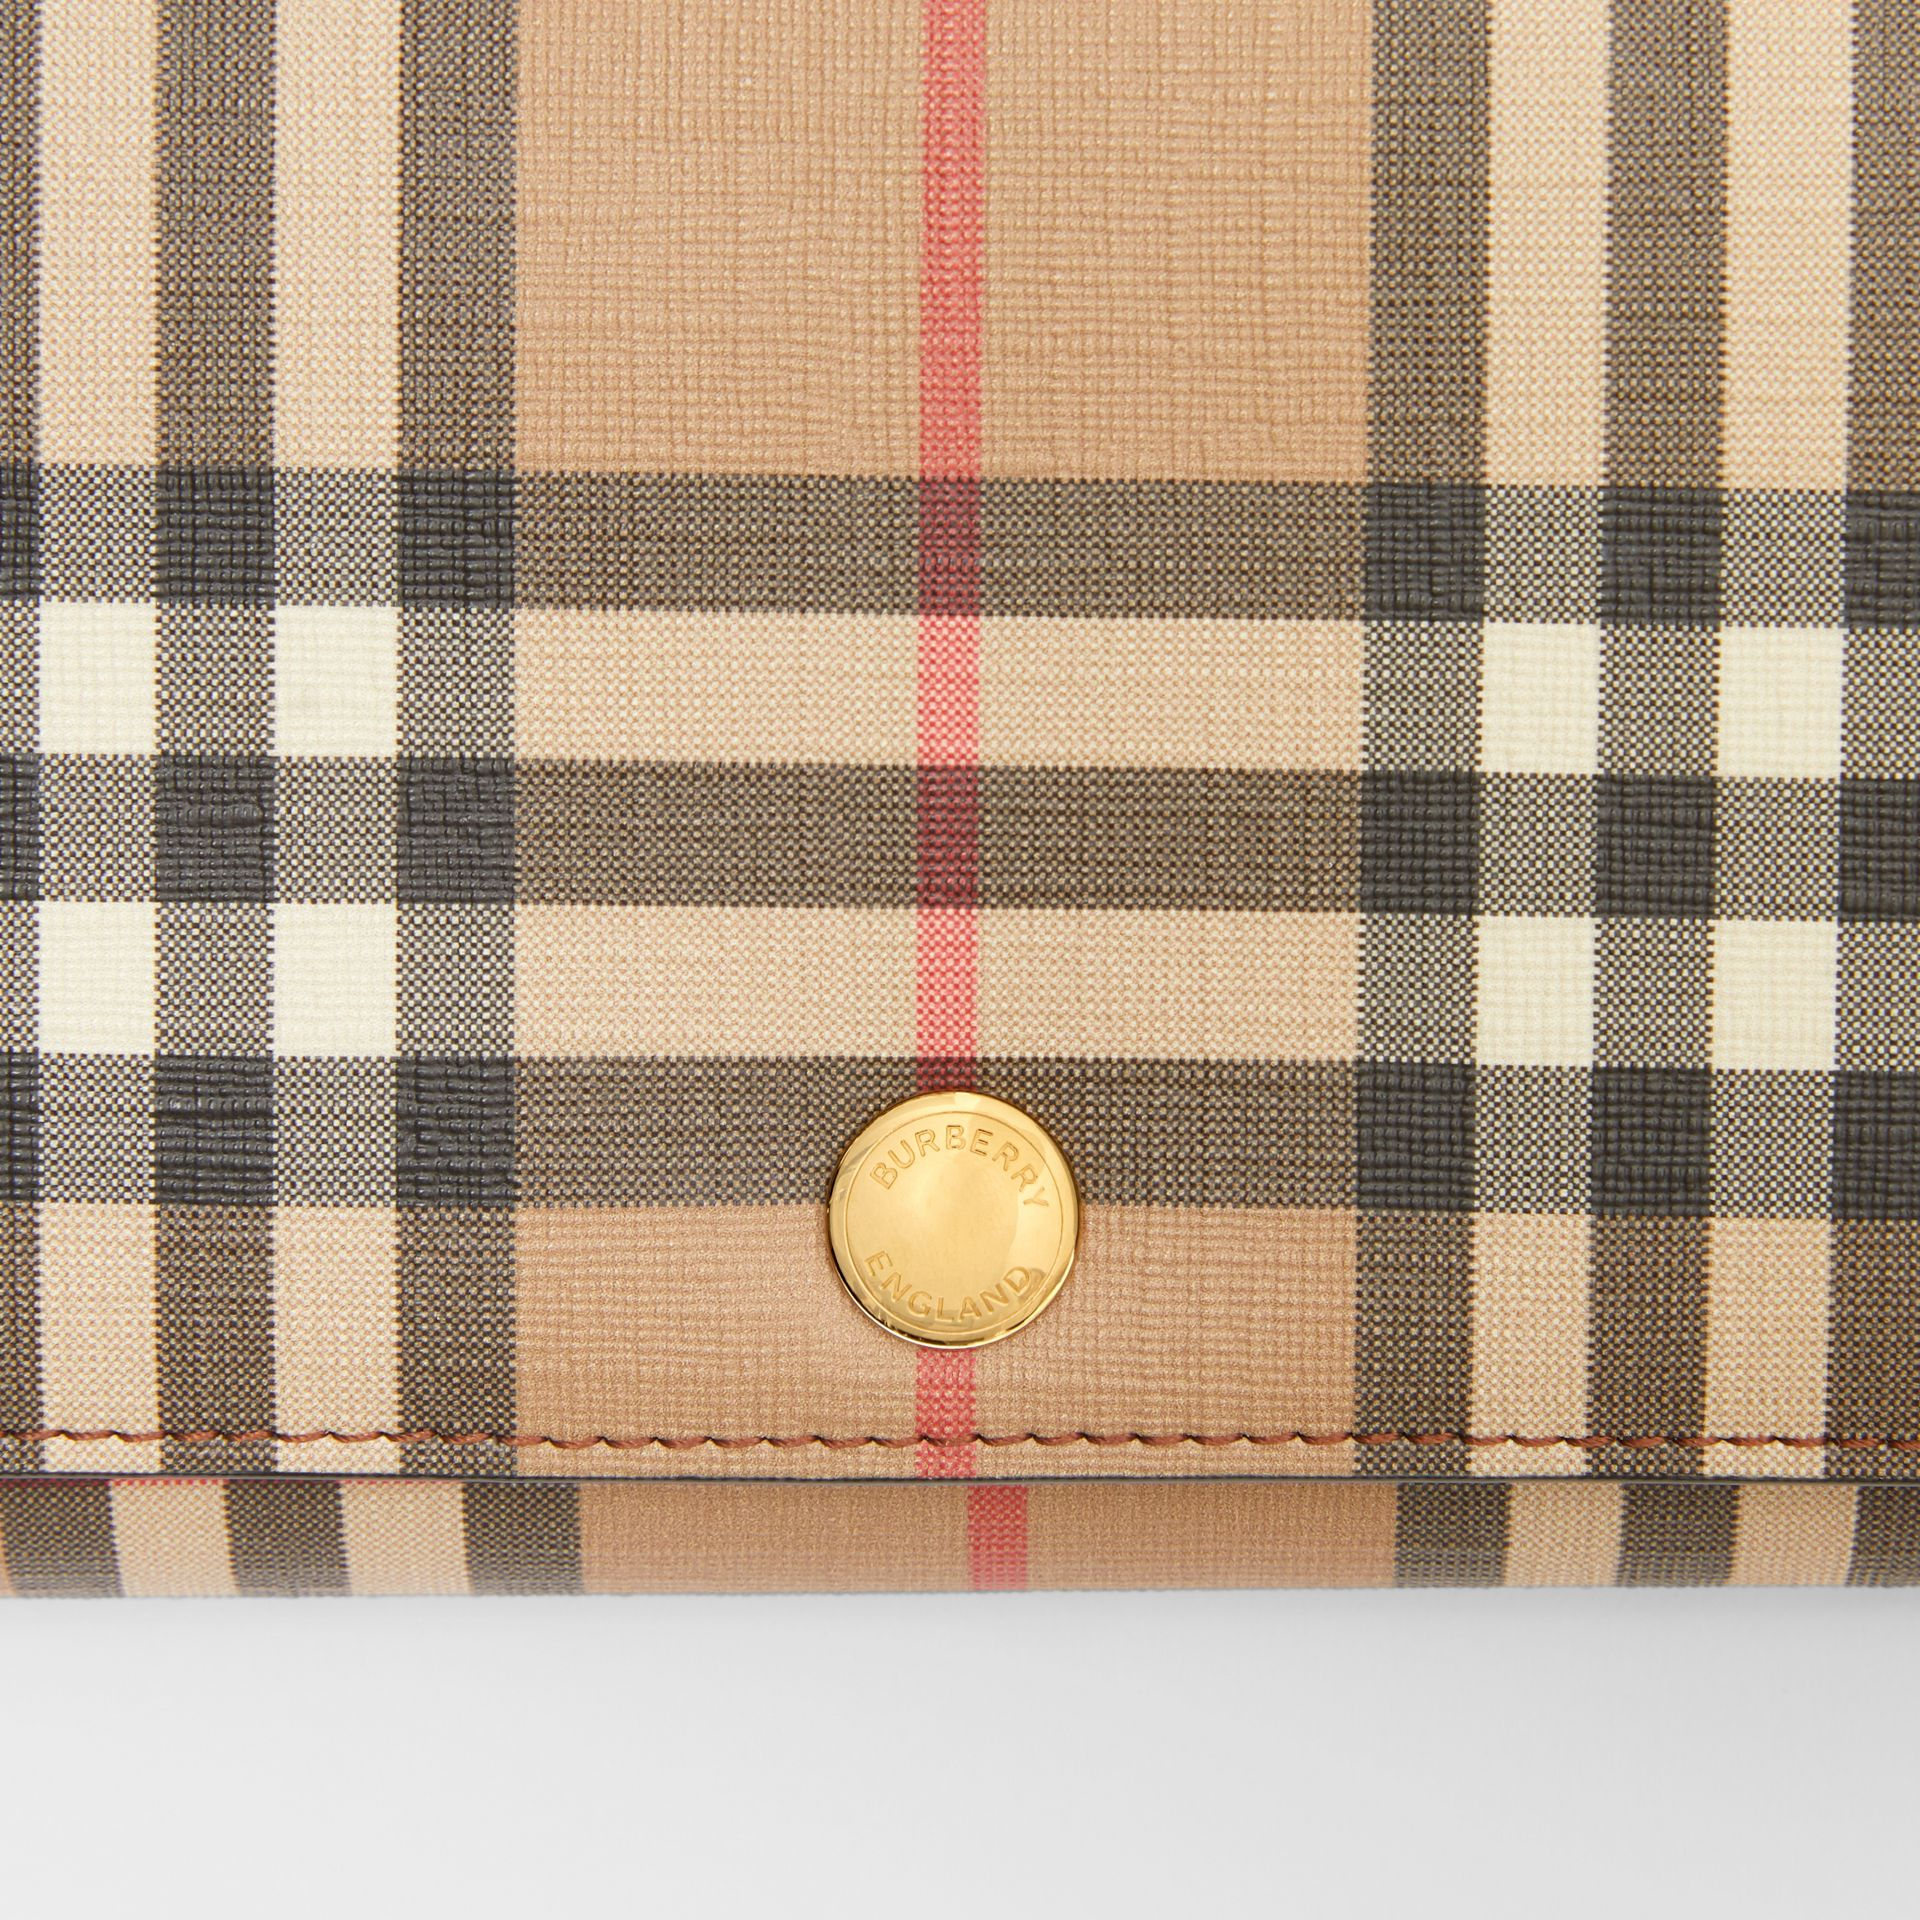 Portefeuille Vintage check avec sangle amovible (Brun Malt) - Femme | Burberry Canada - photo de la galerie 1